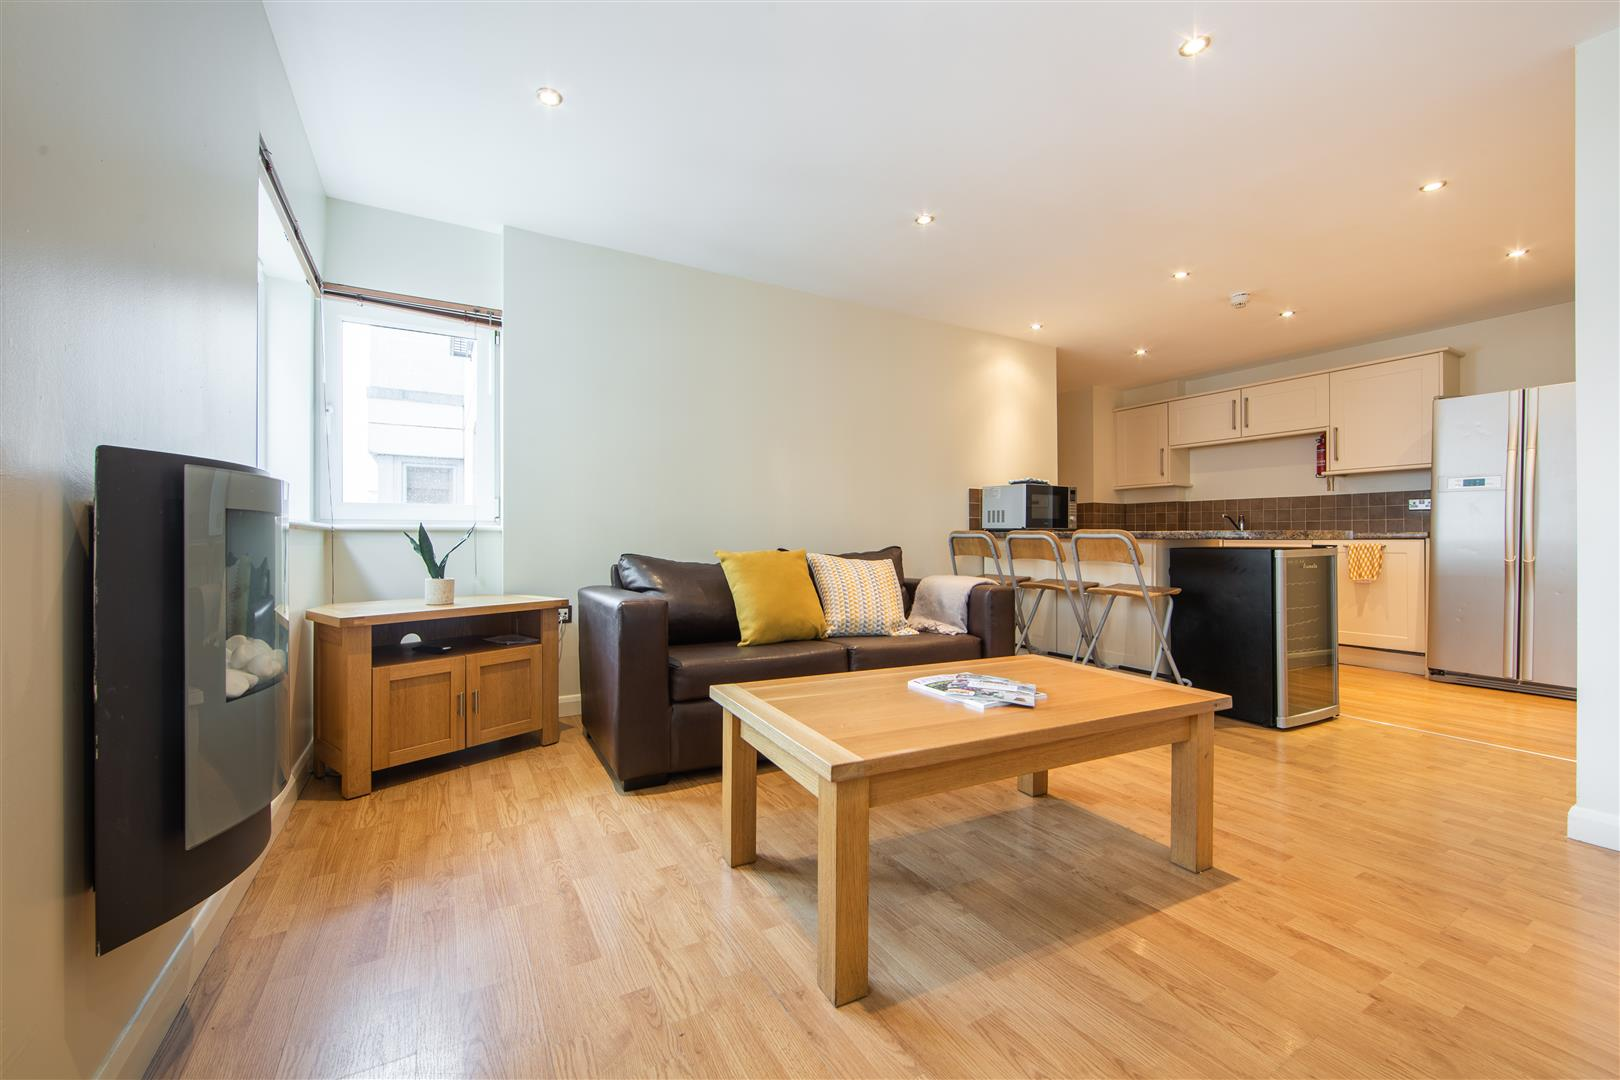 Stepney Lane Newcastle Upon Tyne, 4 Bedrooms  House Share ,To Let